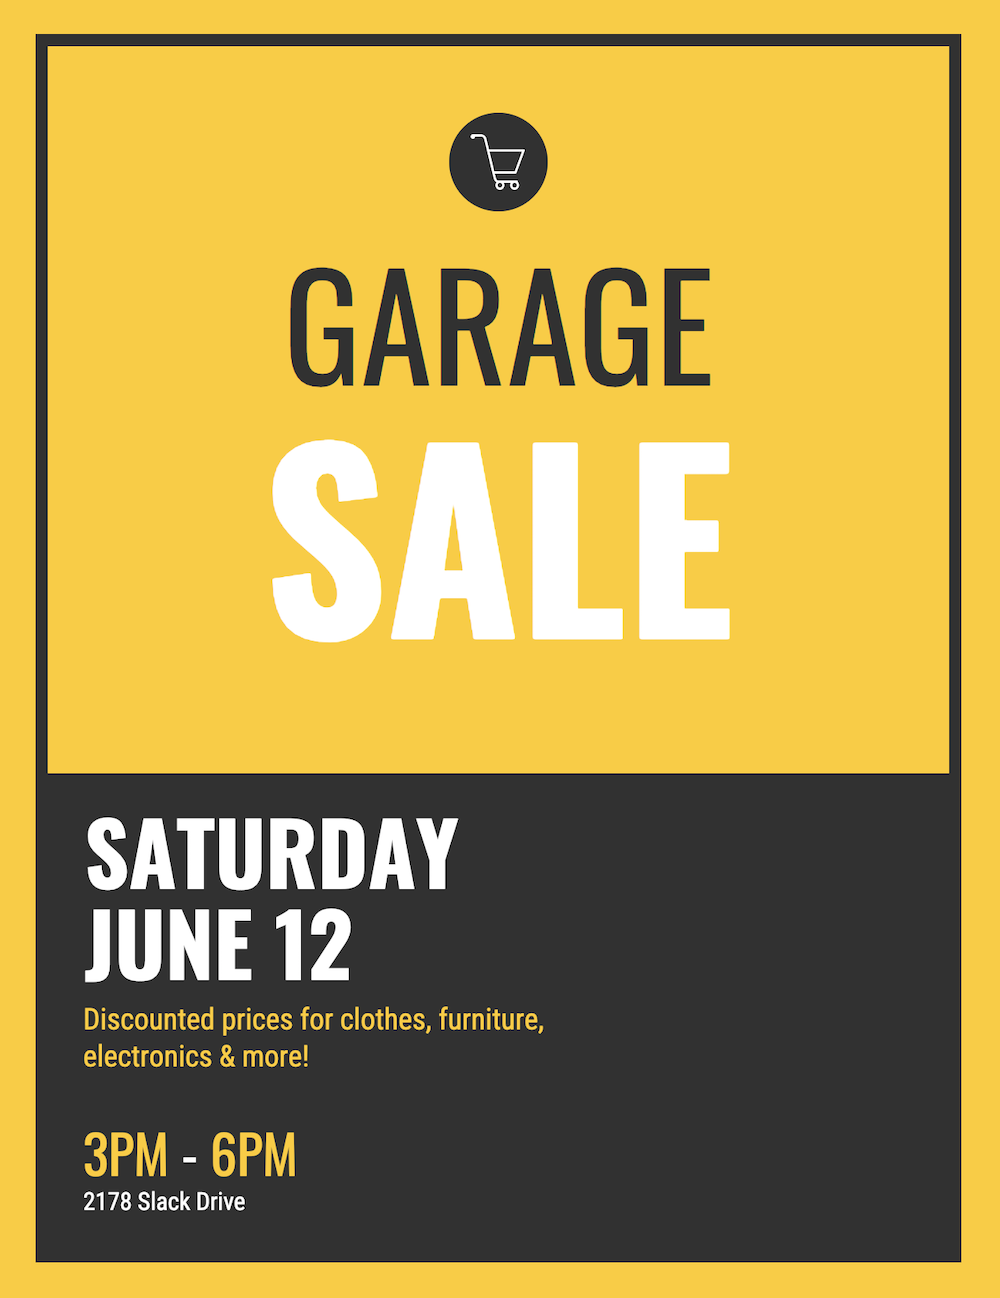 Garage Sale Event Poster Template Idea